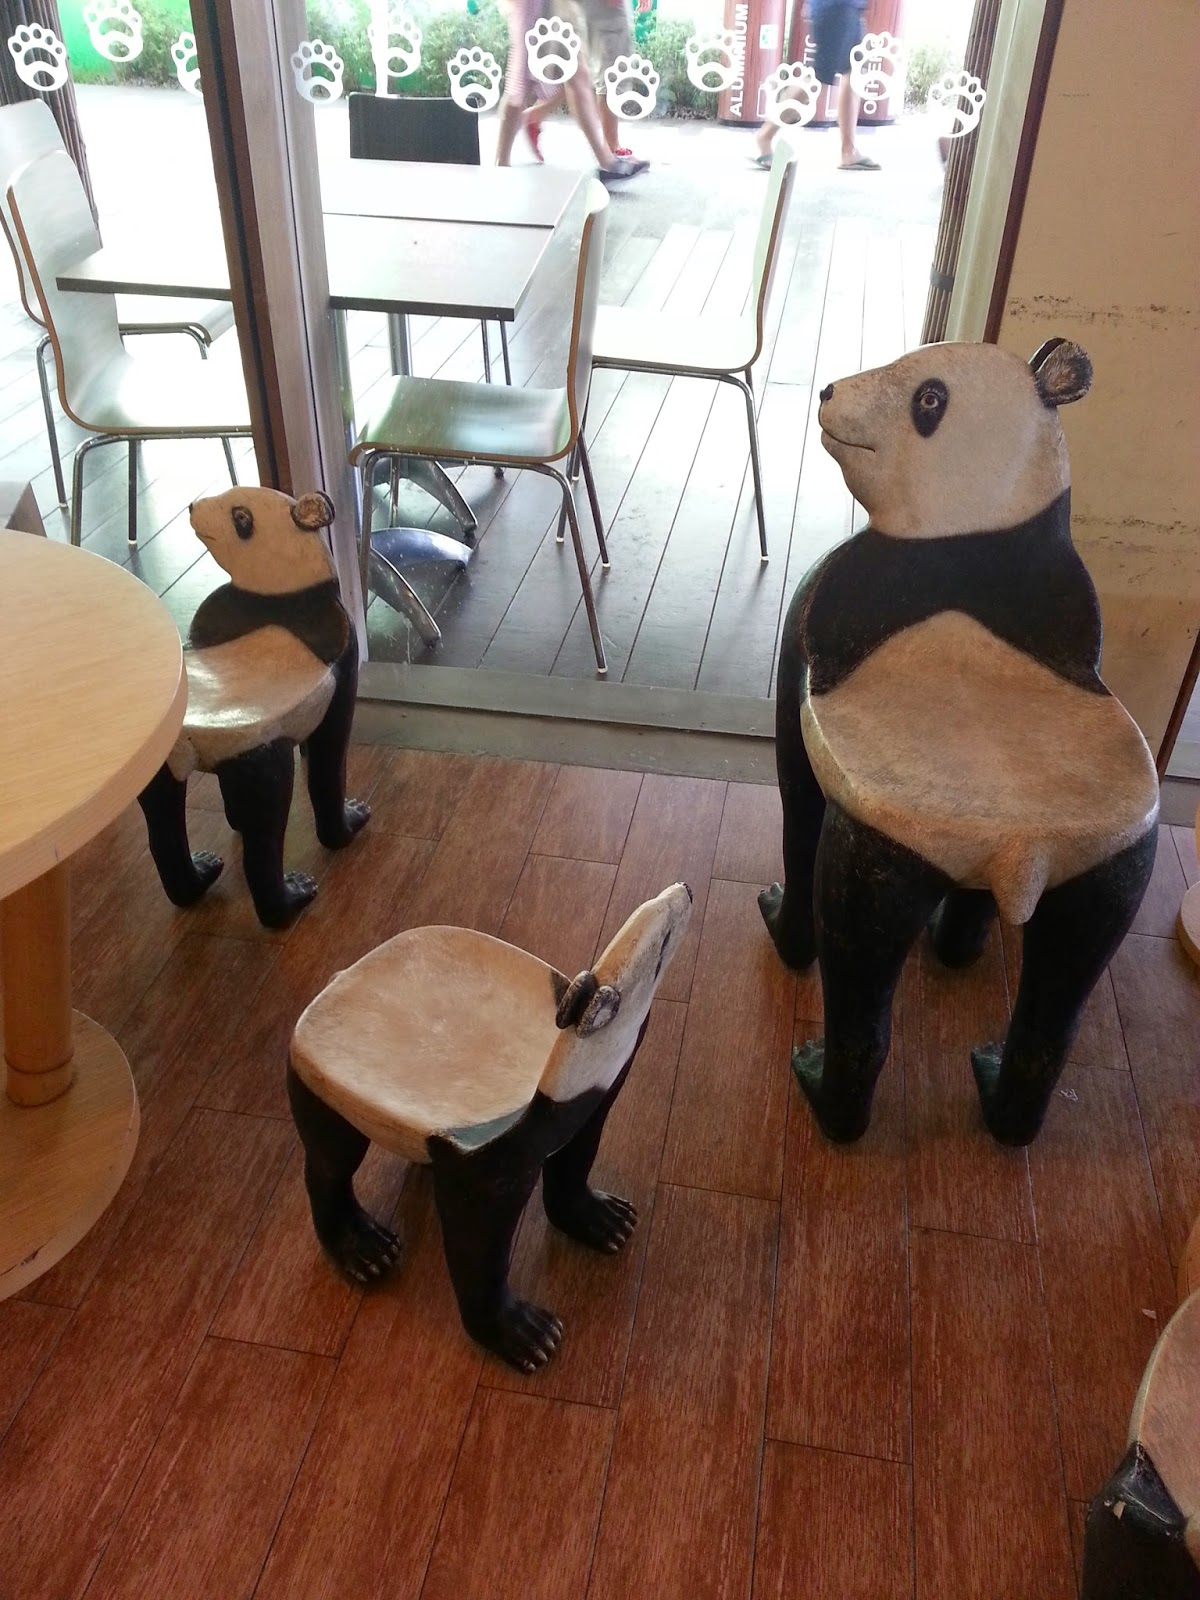 Phenomenal Zon Recommends Mama Panda Kitchen Gmtry Best Dining Table And Chair Ideas Images Gmtryco